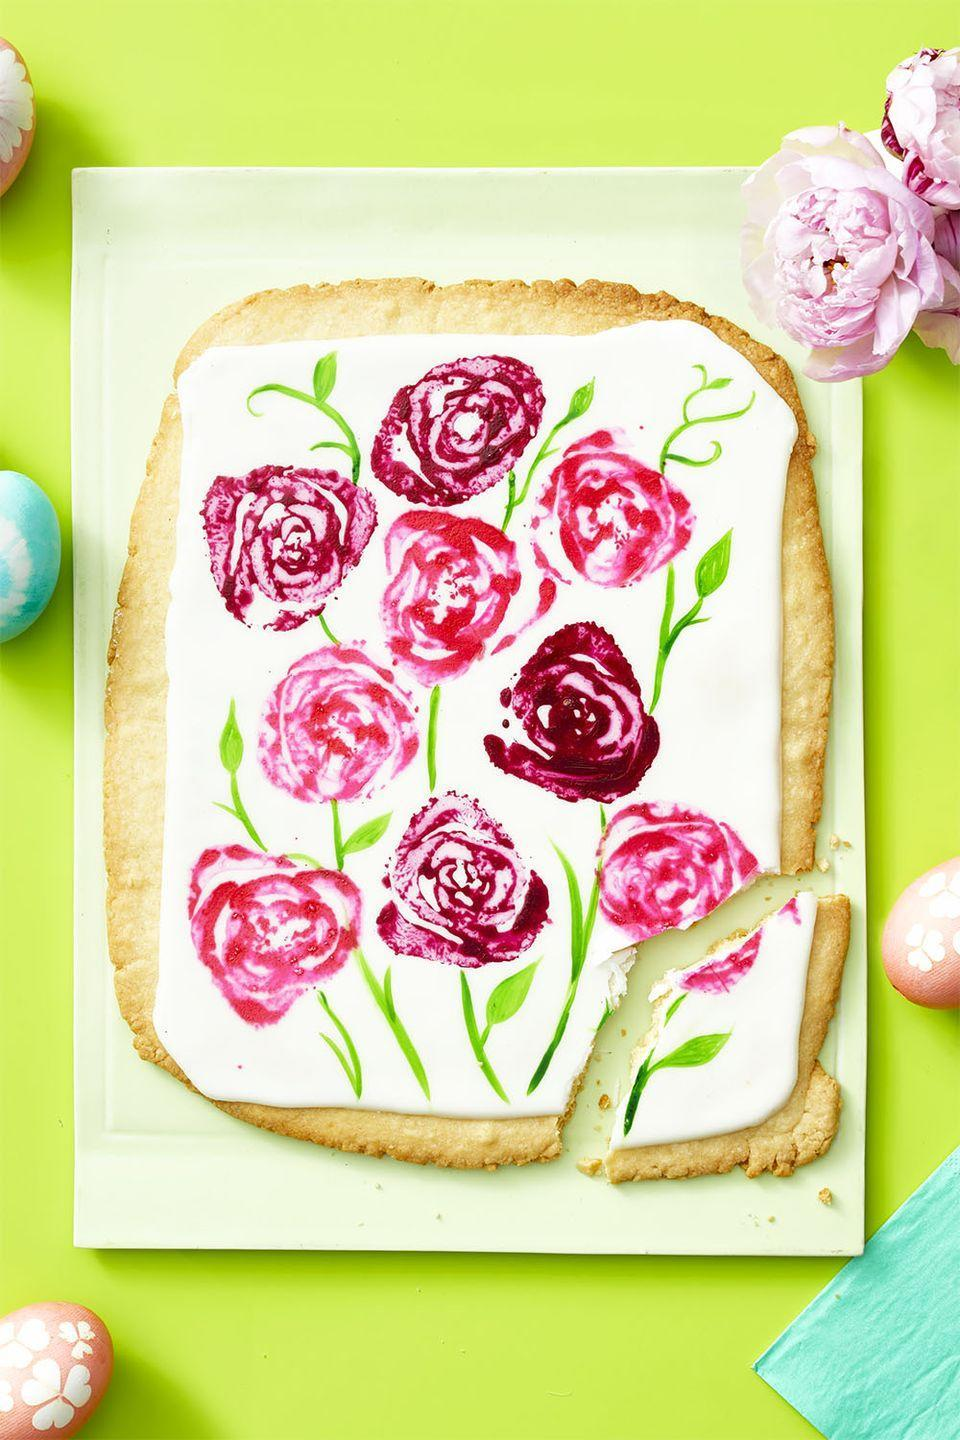 "<p>The cross-section at the base of a celery heart looks like a rose. Dip it in colored icing and ""stamp"" onto giant sugar cookies!</p><p><em><strong><a href=""https://www.womansday.com/food-recipes/a35681467/giant-sugar-cookie-bouquet-recipe/"" rel=""nofollow noopener"" target=""_blank"" data-ylk=""slk:Get the Giant Sugar Cookie Bouquet recipe."" class=""link rapid-noclick-resp"">Get the Giant Sugar Cookie Bouquet recipe.</a></strong></em></p>"